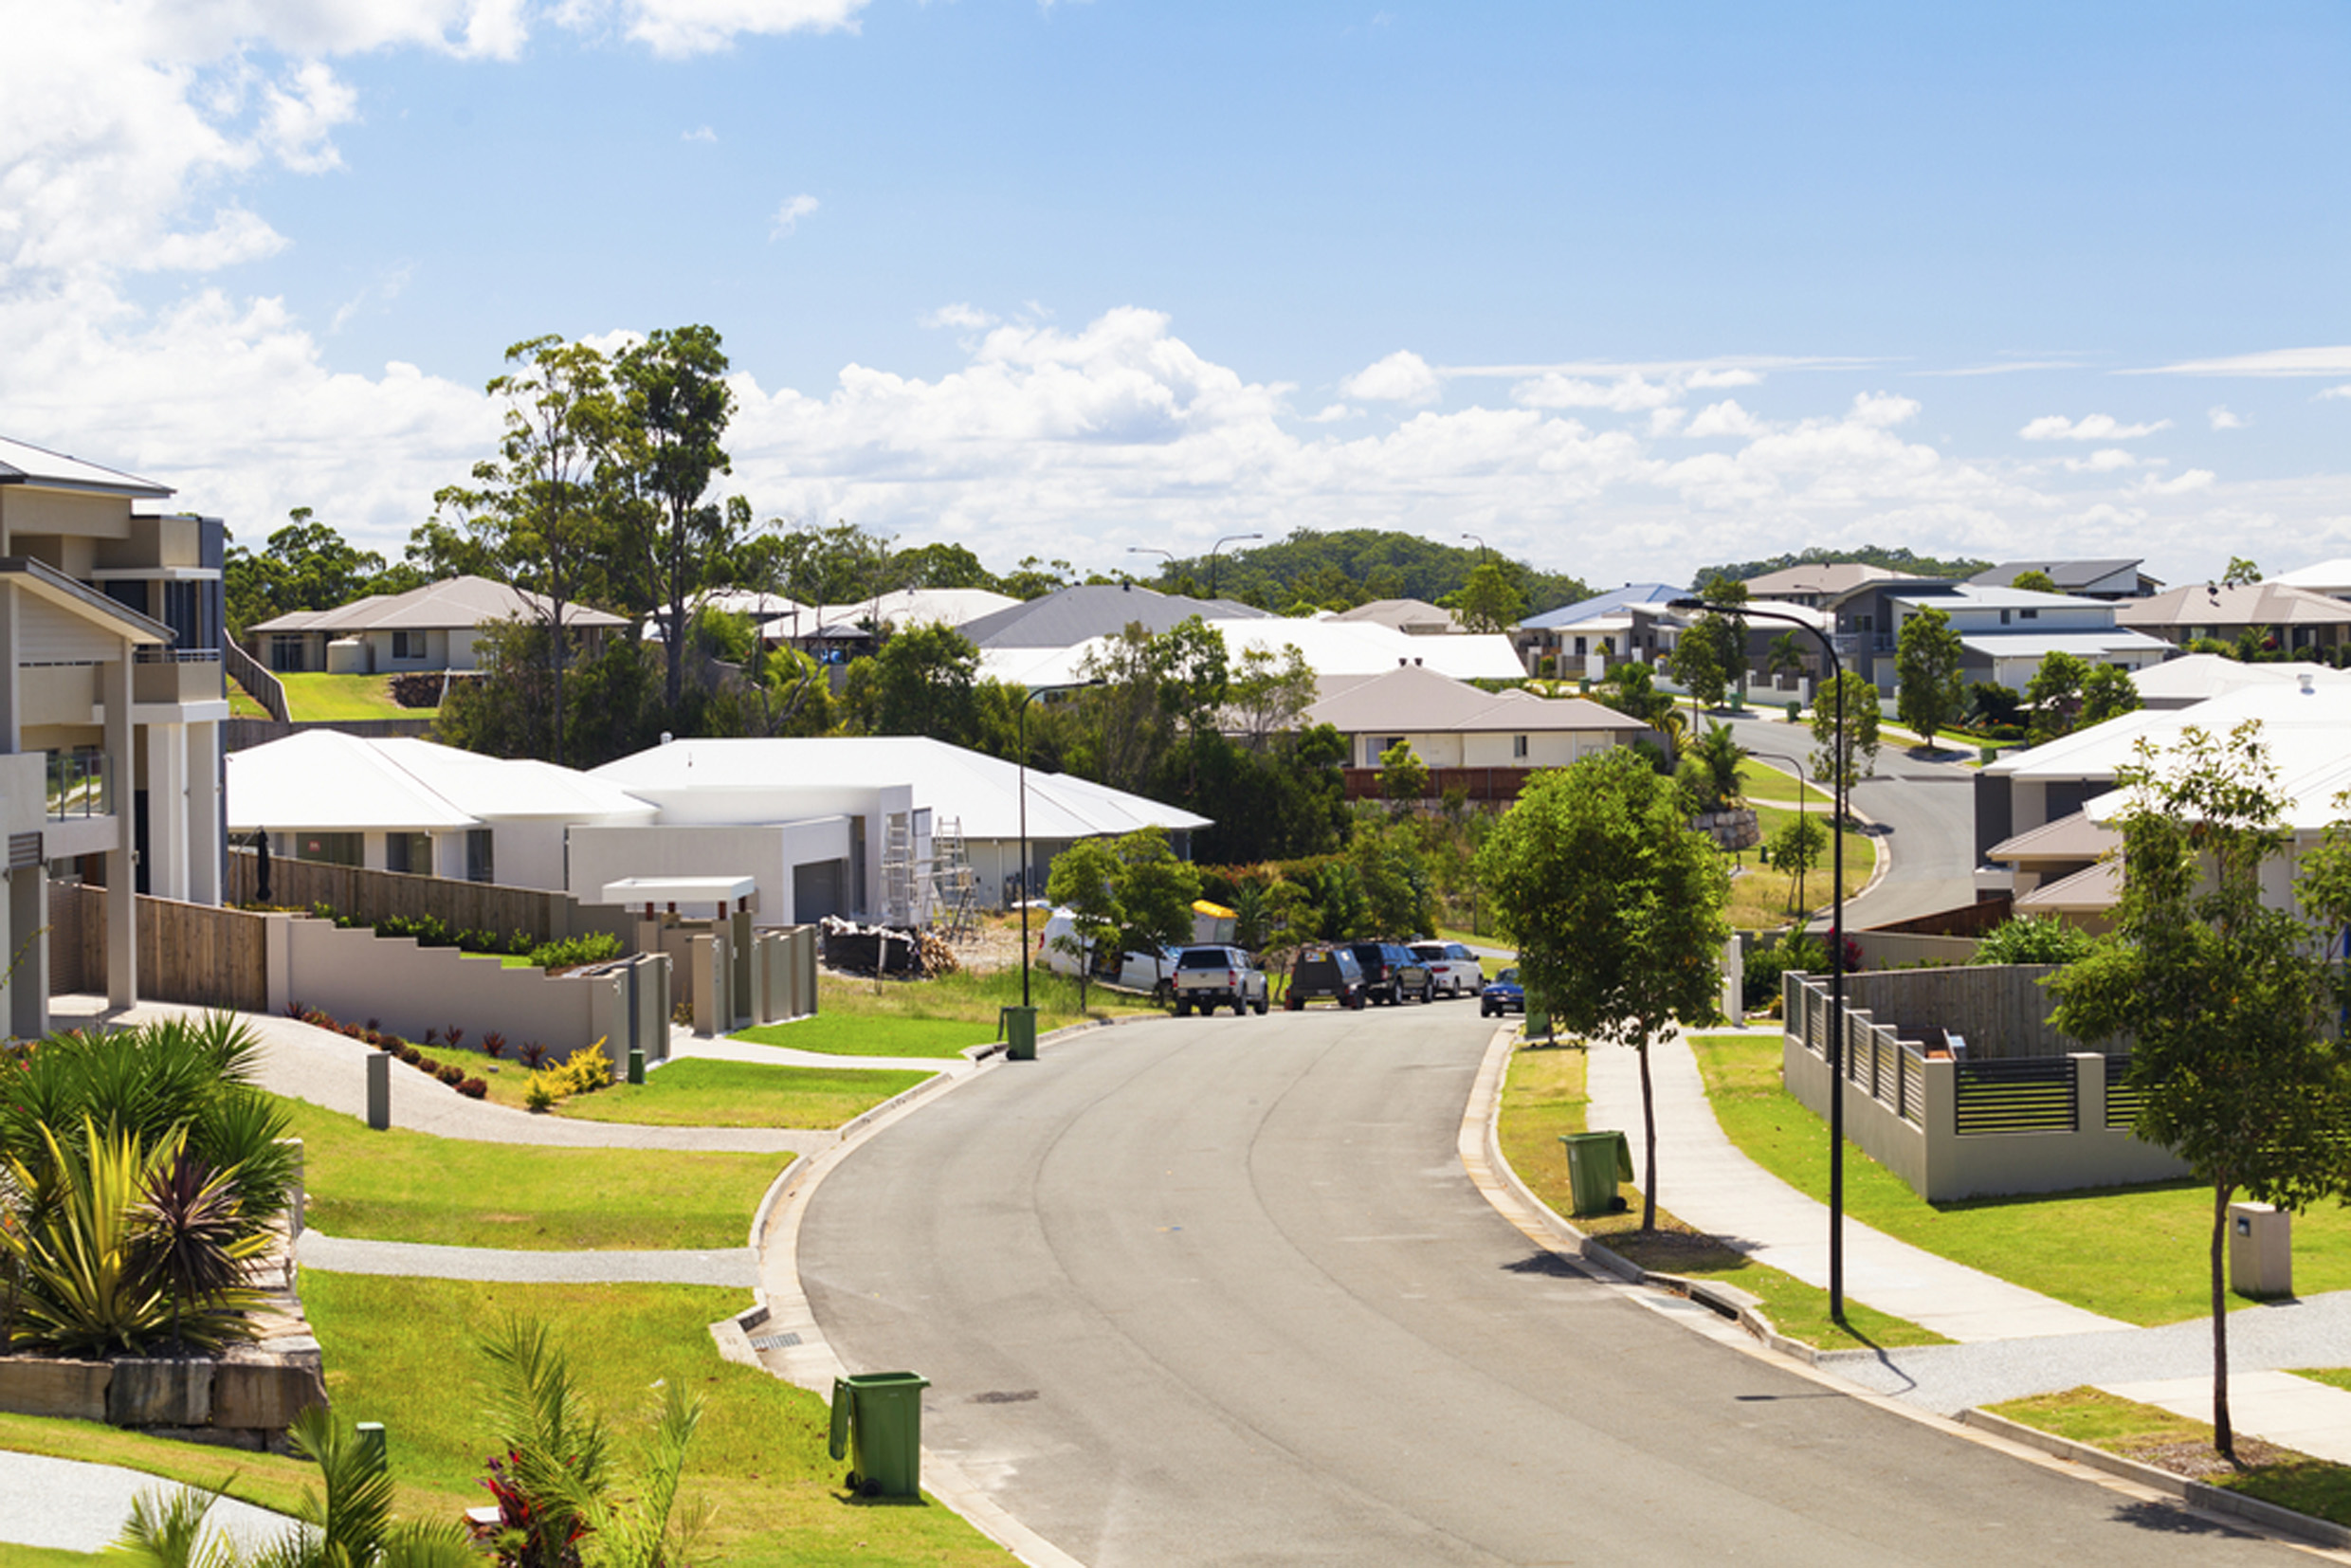 Property SMSF Image